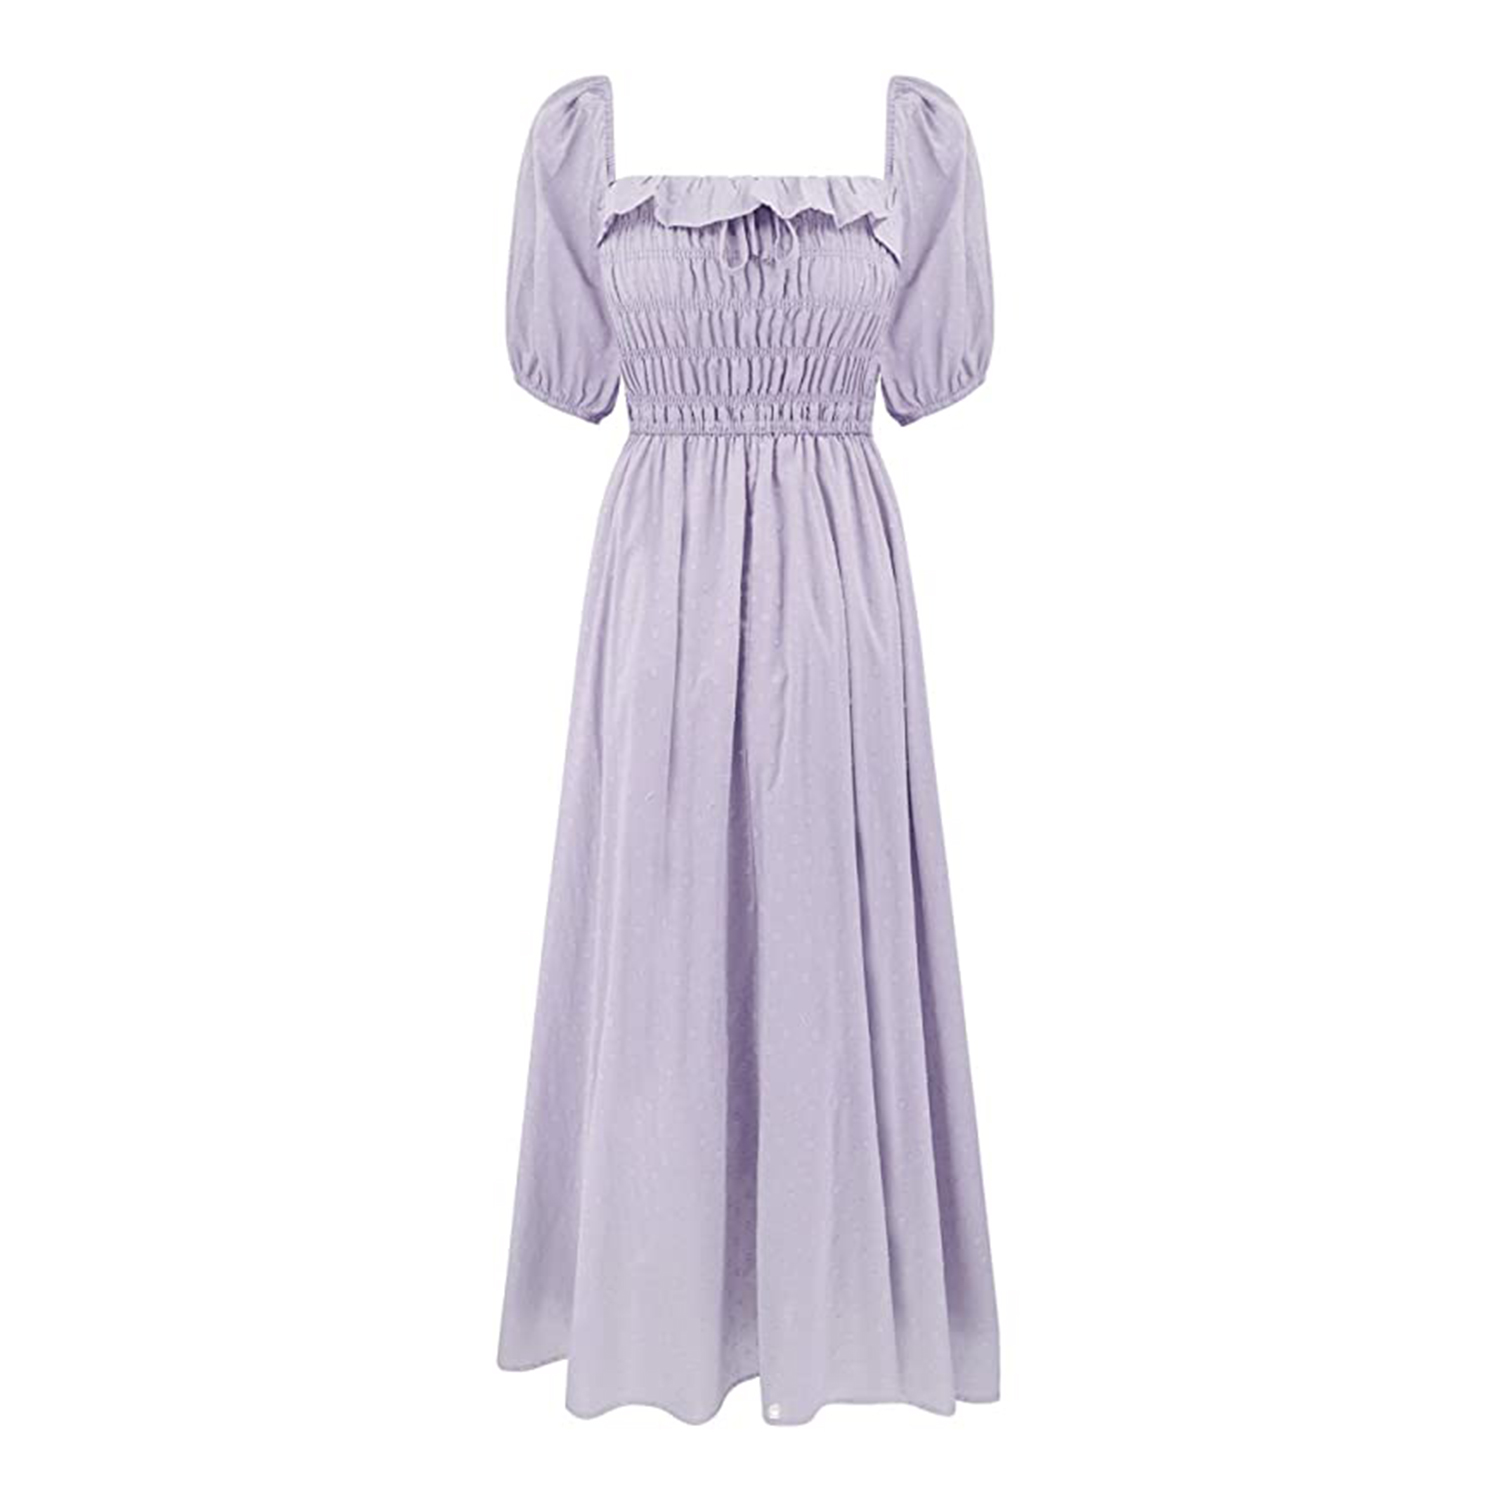 long purple puff sleeve dress